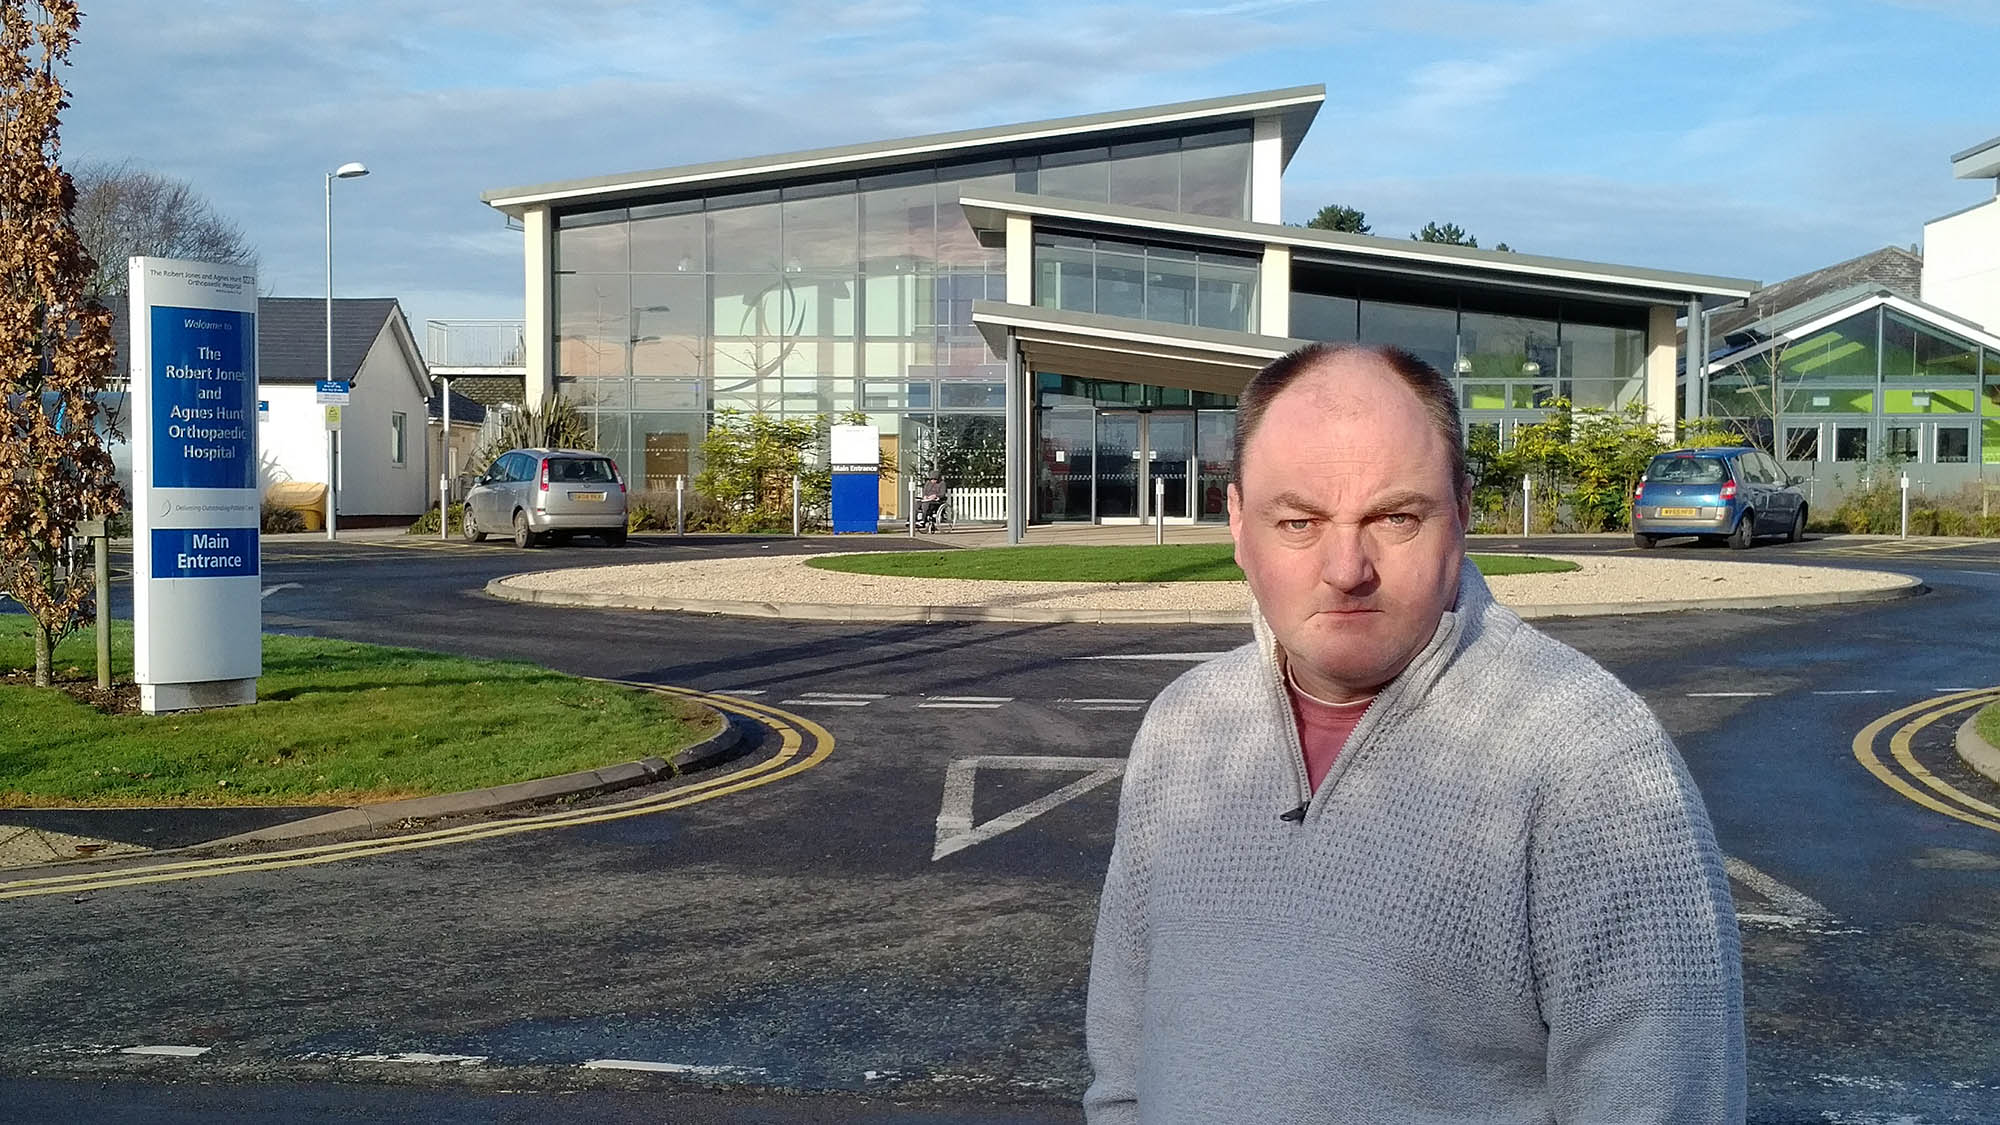 David walker outside RJ&AH Hospital under threat of cuts to services including the Maternity Unit